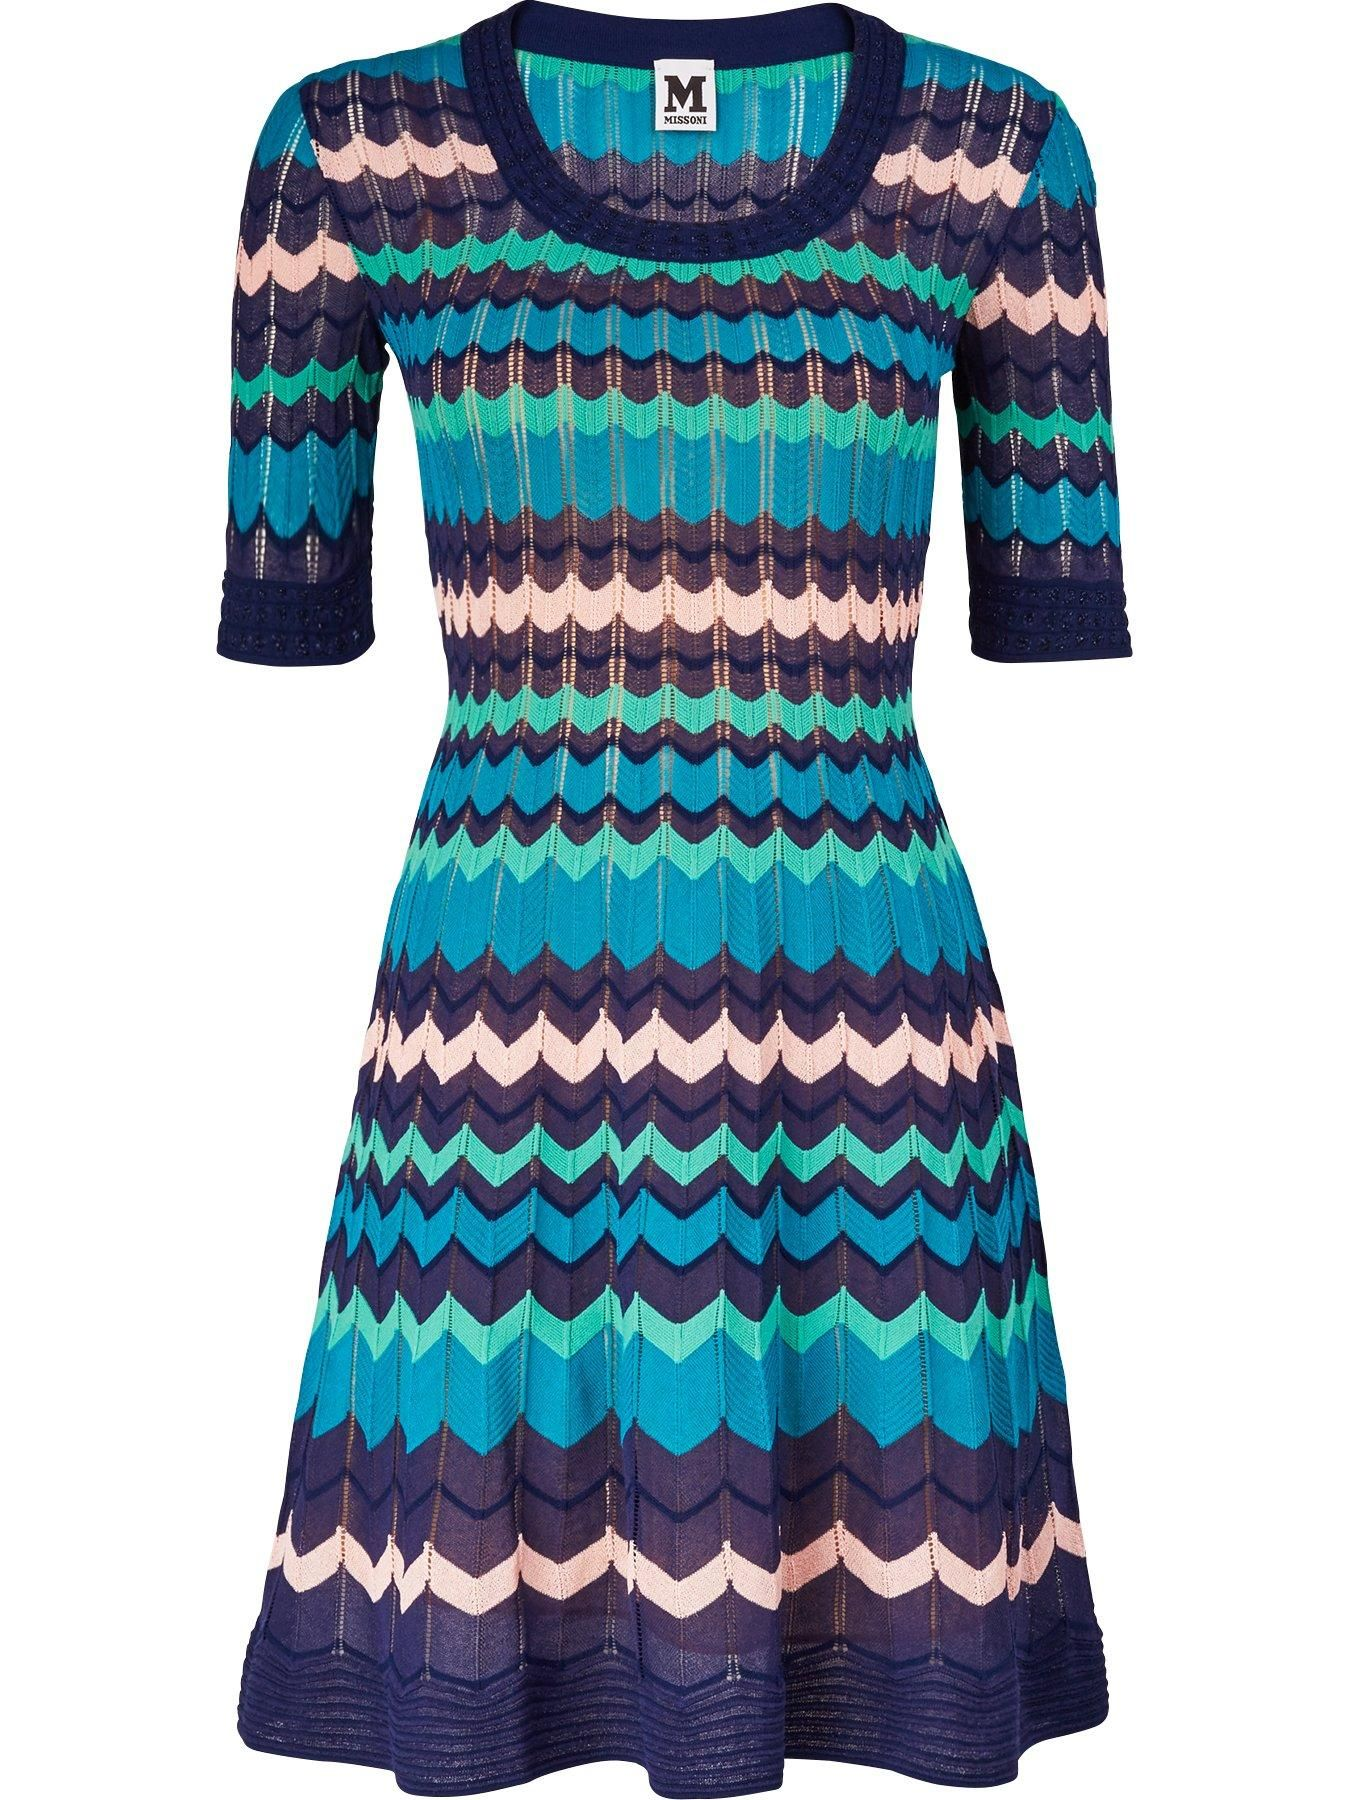 M MISSONI Knitted Zig Zag Dress Blue veryexclusive